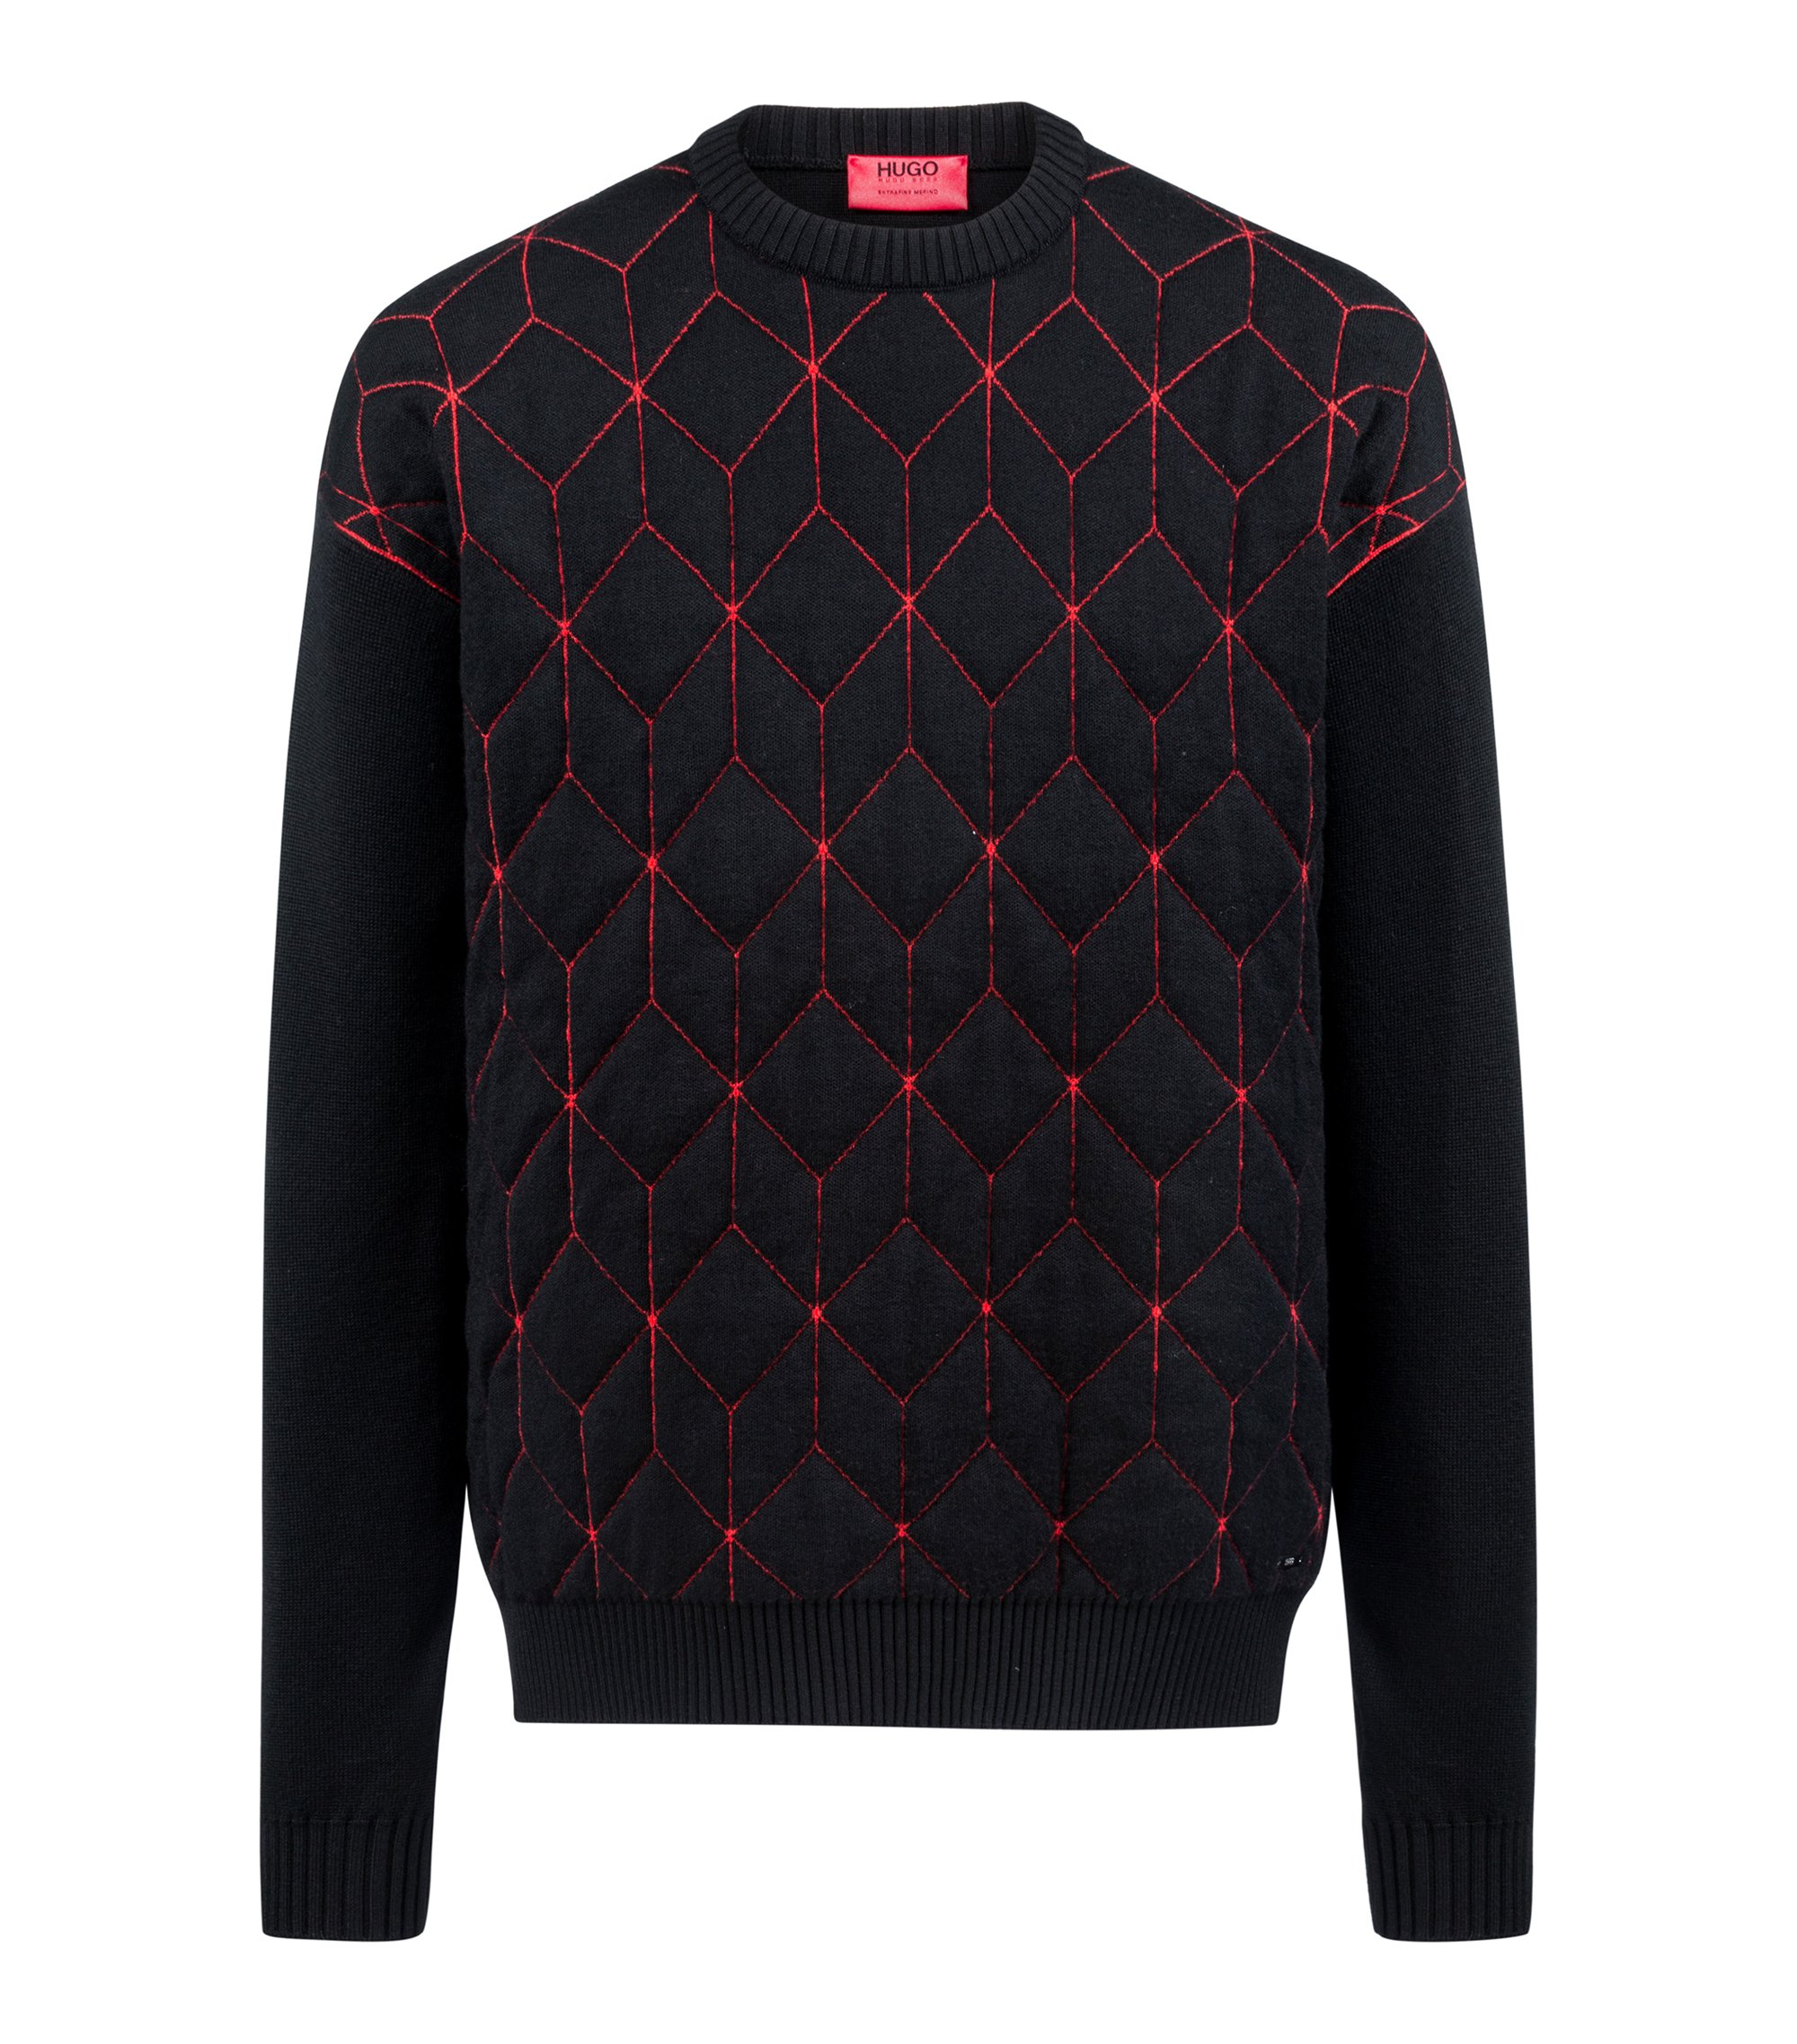 Oversized-fit sweater in virgin wool with geometric pattern, Patterned